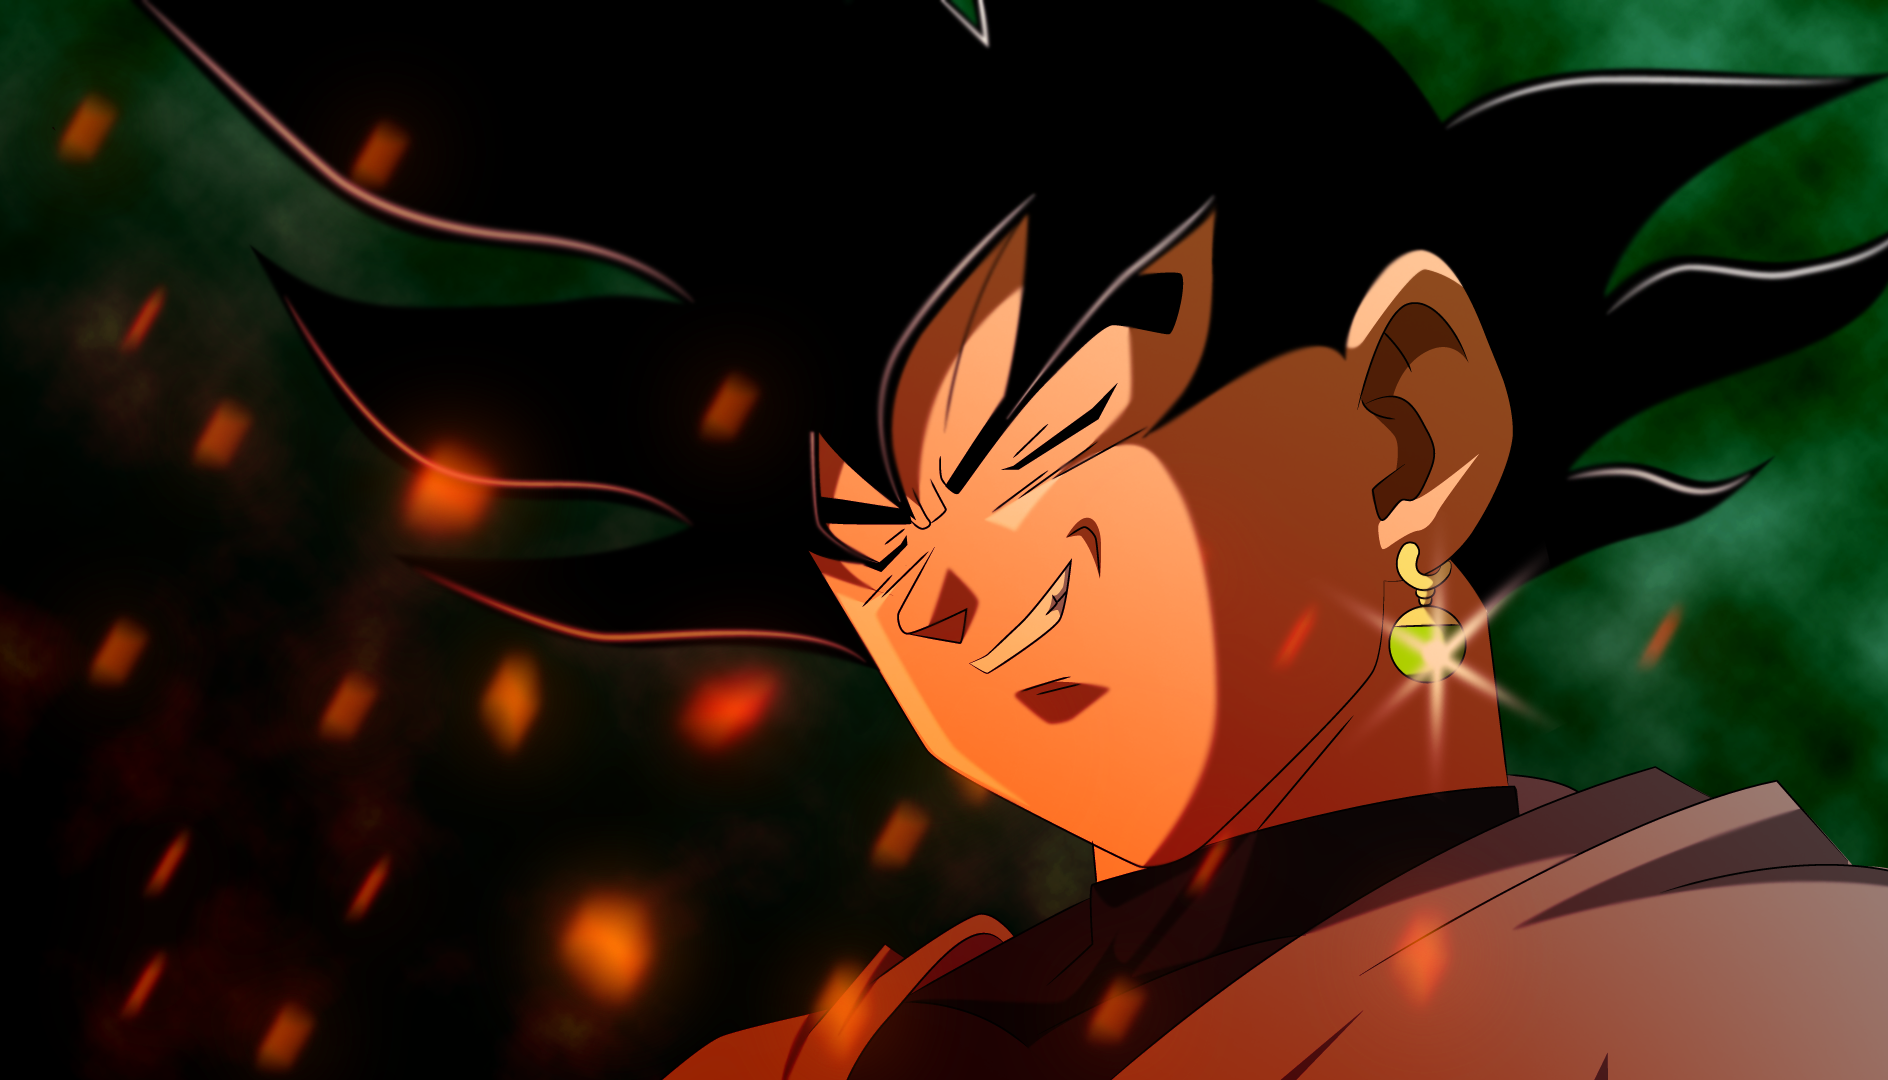 106 Black Goku Hd Wallpapers Background Images Wallpaper Abyss